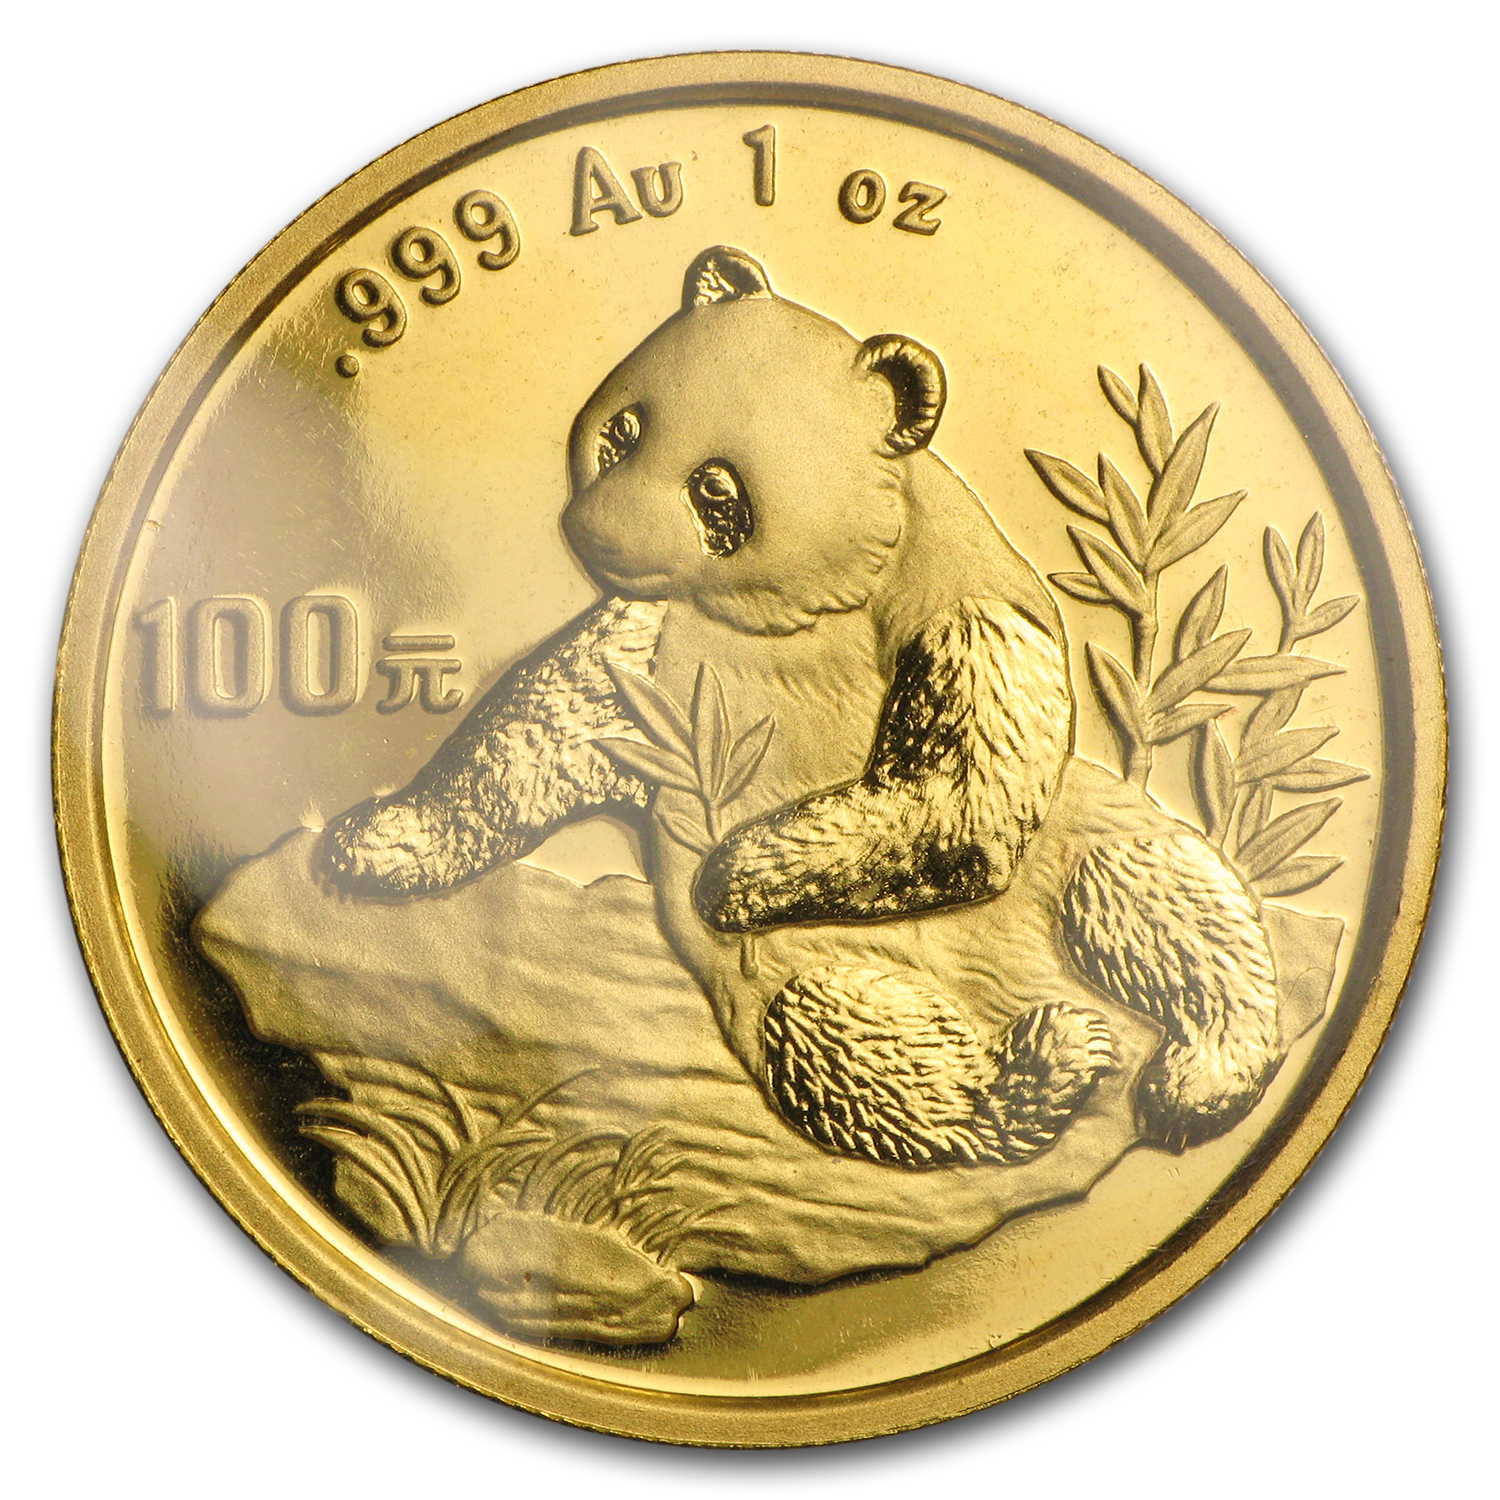 1998 China 1 oz Gold Panda Small Date BU (Sealed)